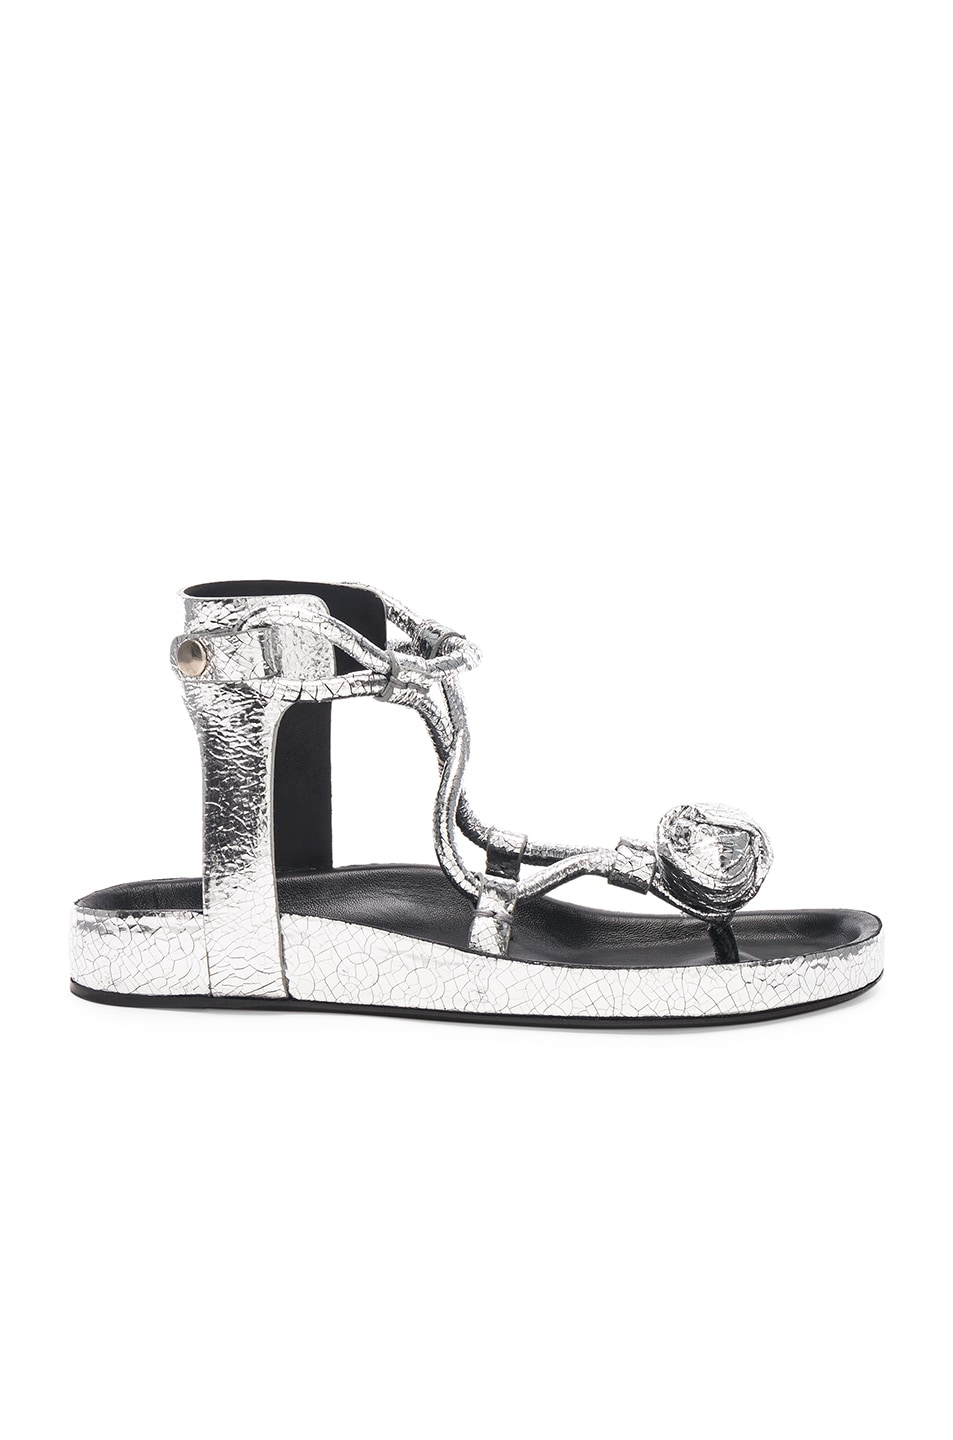 Isabel Marant Metallic Leather Either Sandals in . ubTIst4b8X